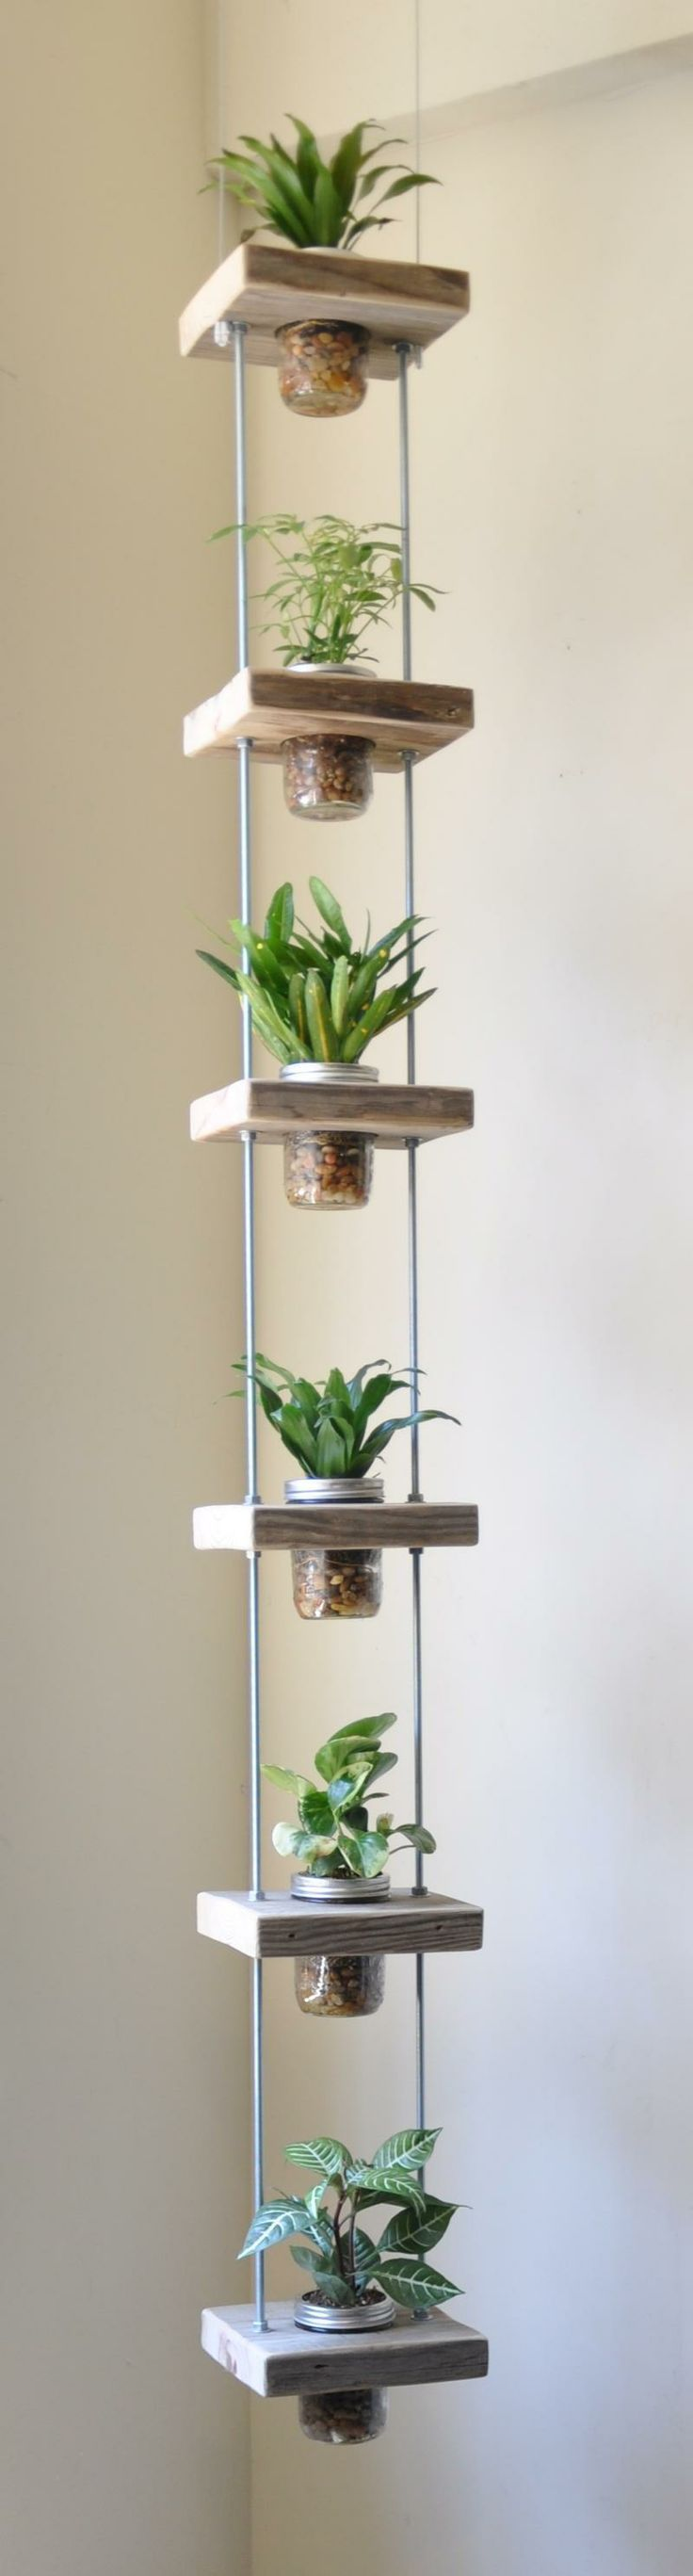 25 best ideas about indoor vertical gardens on pinterest for Vertical garden planters diy